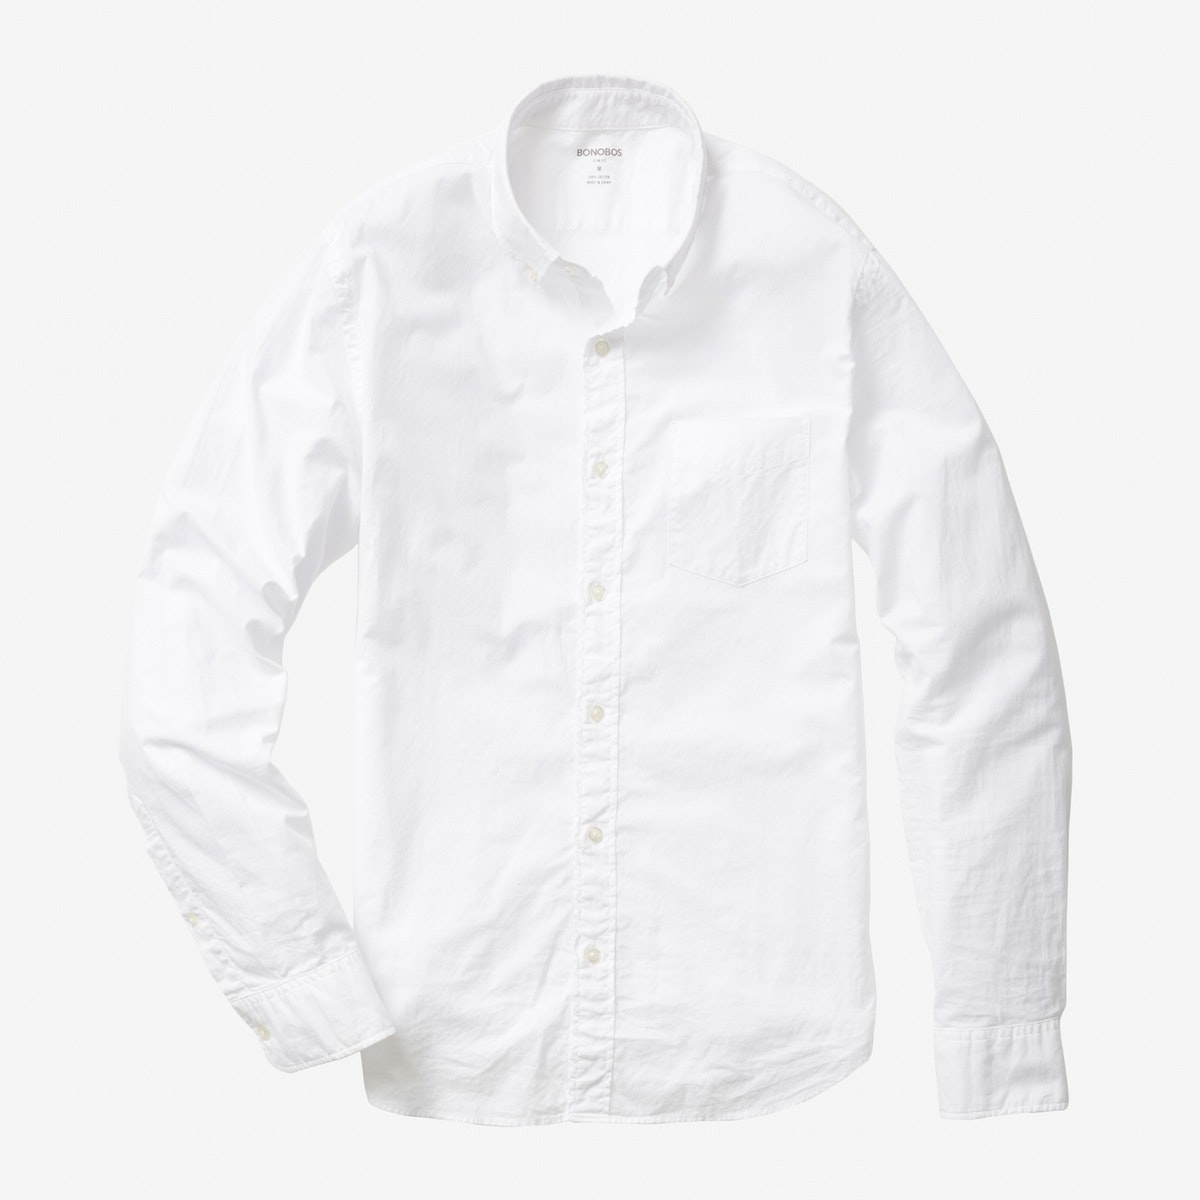 Summer Weight Shirt